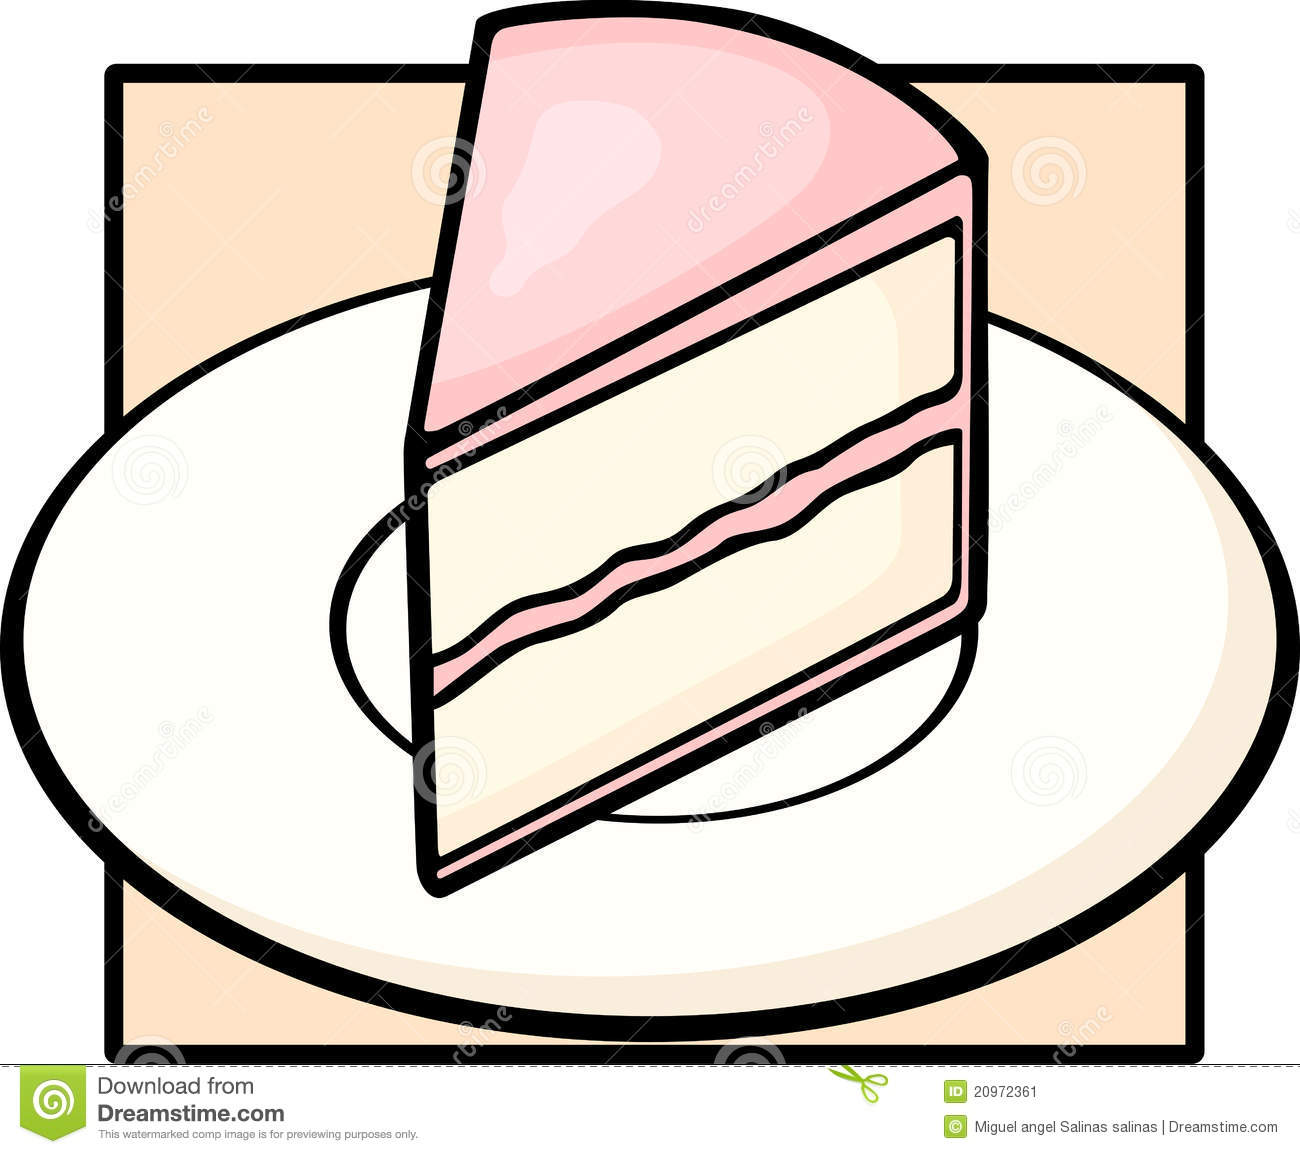 Sliced Cake Logos Clip Art – Clipart Free Download clipart transparent